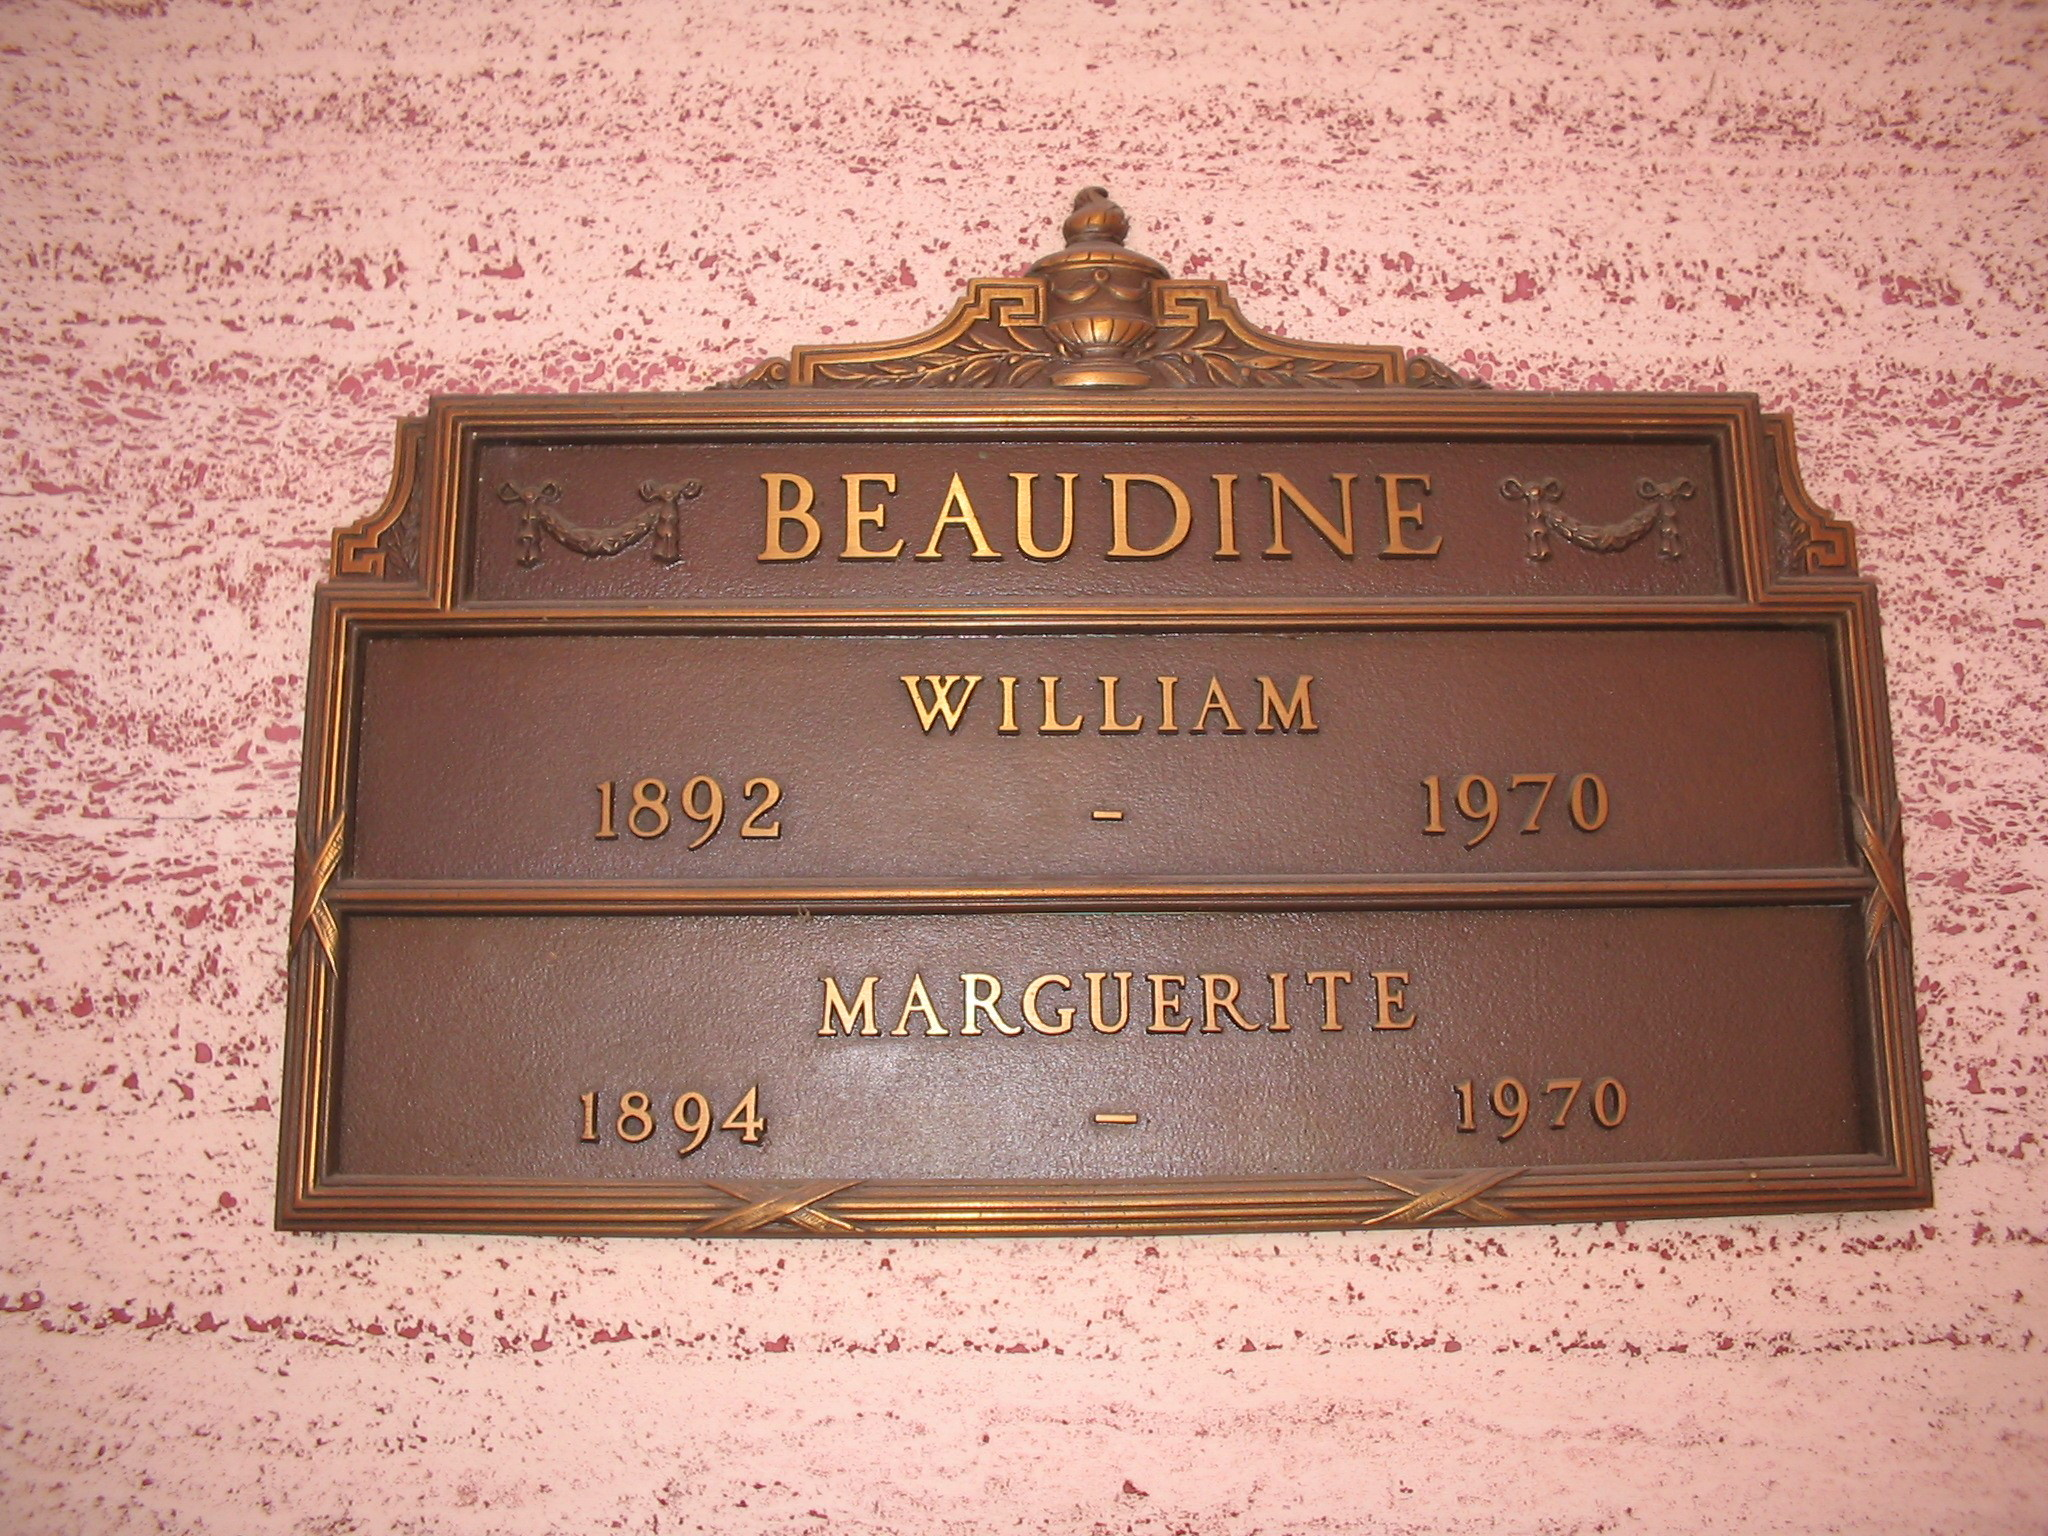 Bill & Marguerite Beaudine Burial plate at Hollywood Forever